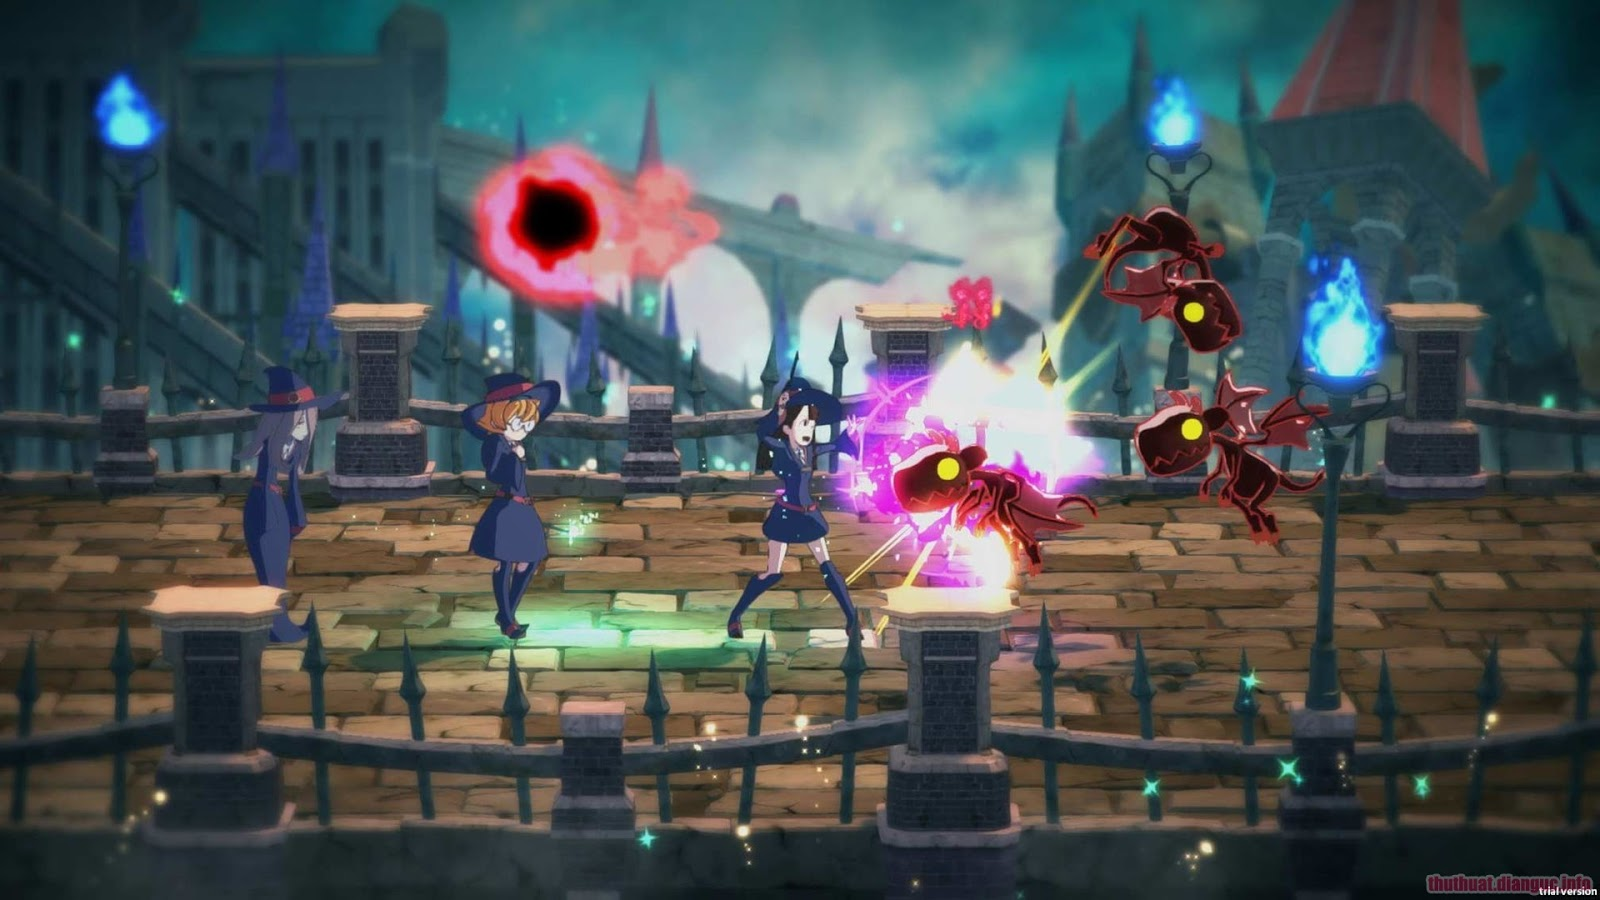 Download Game Little Witch Academia: Chamber of Time Full Crack, Game Little Witch Academia: Chamber of Time, Game Little Witch Academia: Chamber of Time free download, Little Witch Academia: Chamber of Time, Little Witch Academia: Chamber of Time free download